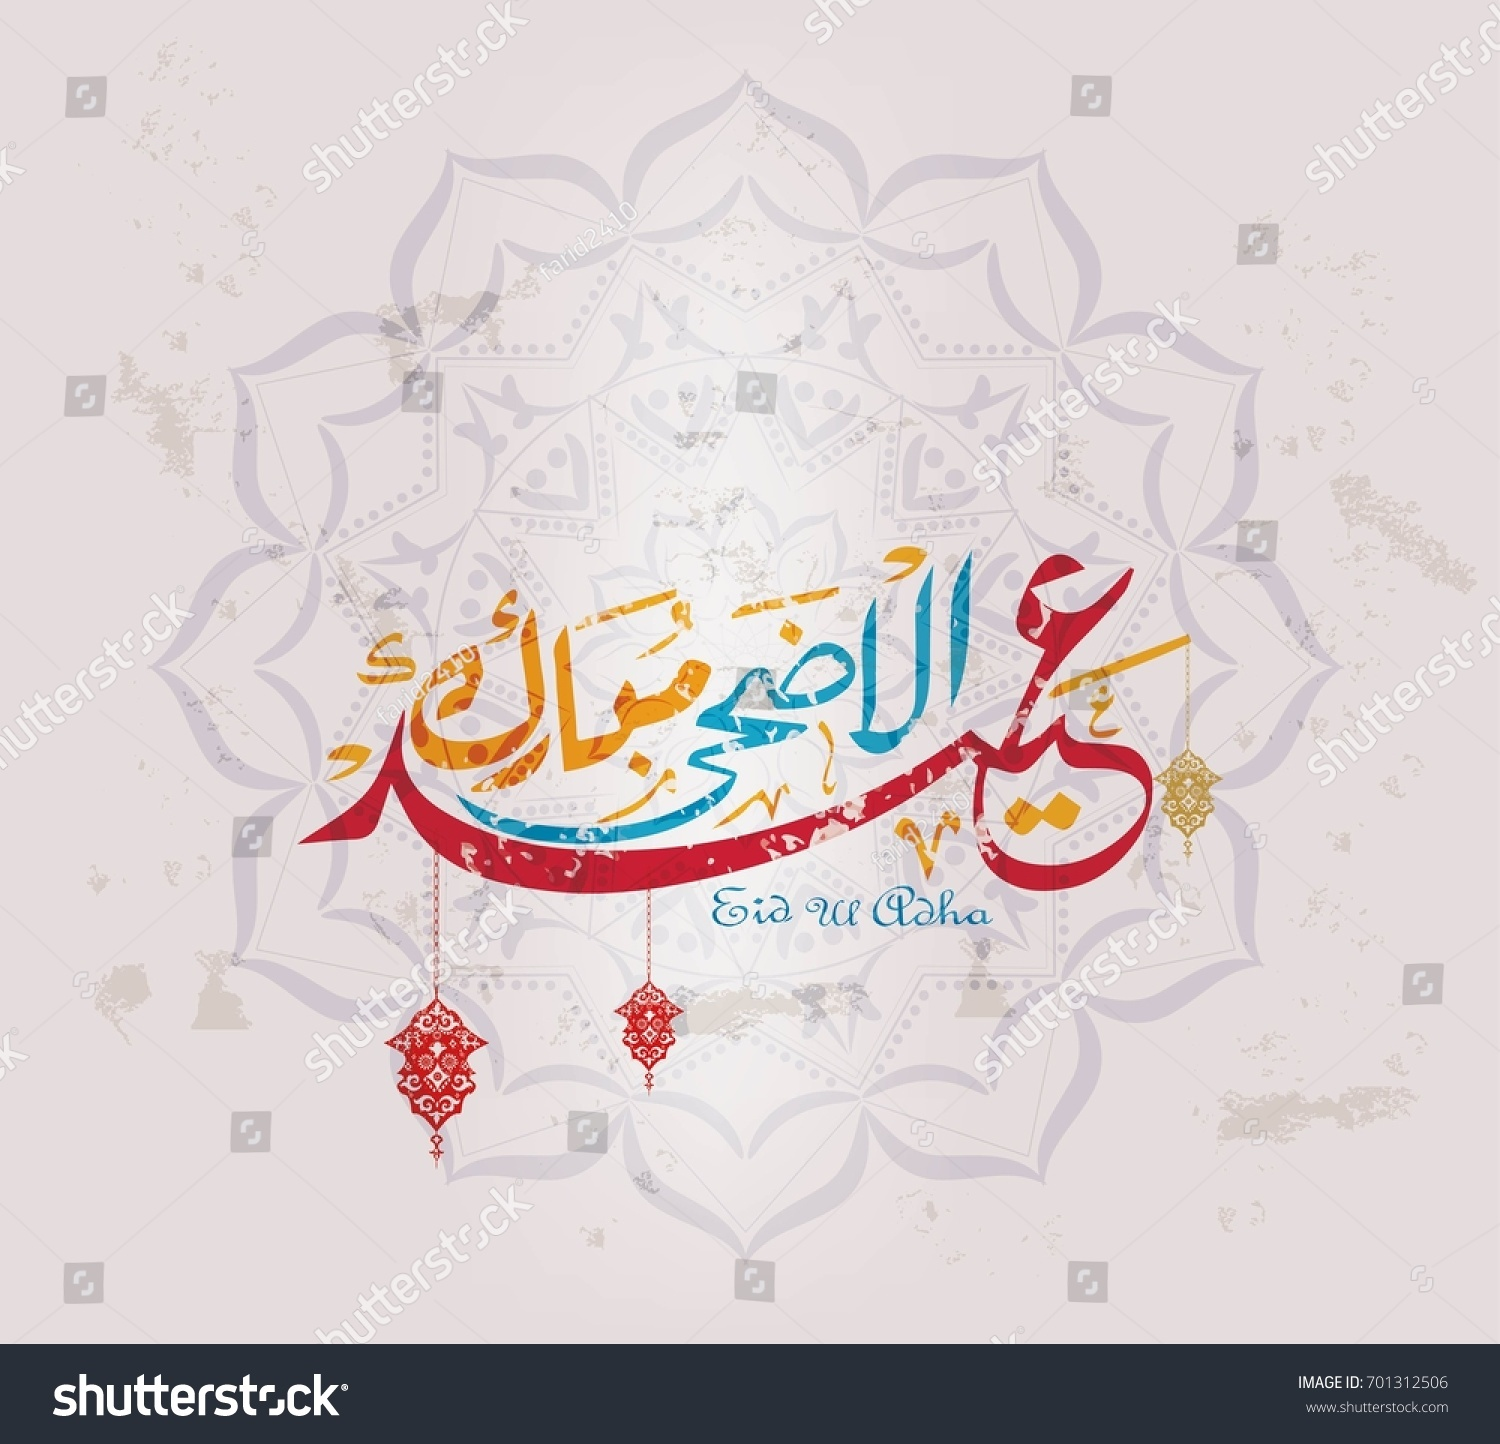 Happy eid adha traditional muslim greeting stock vector 701312506 happy eid adha traditional muslim greeting stock vector 701312506 shutterstock kristyandbryce Image collections